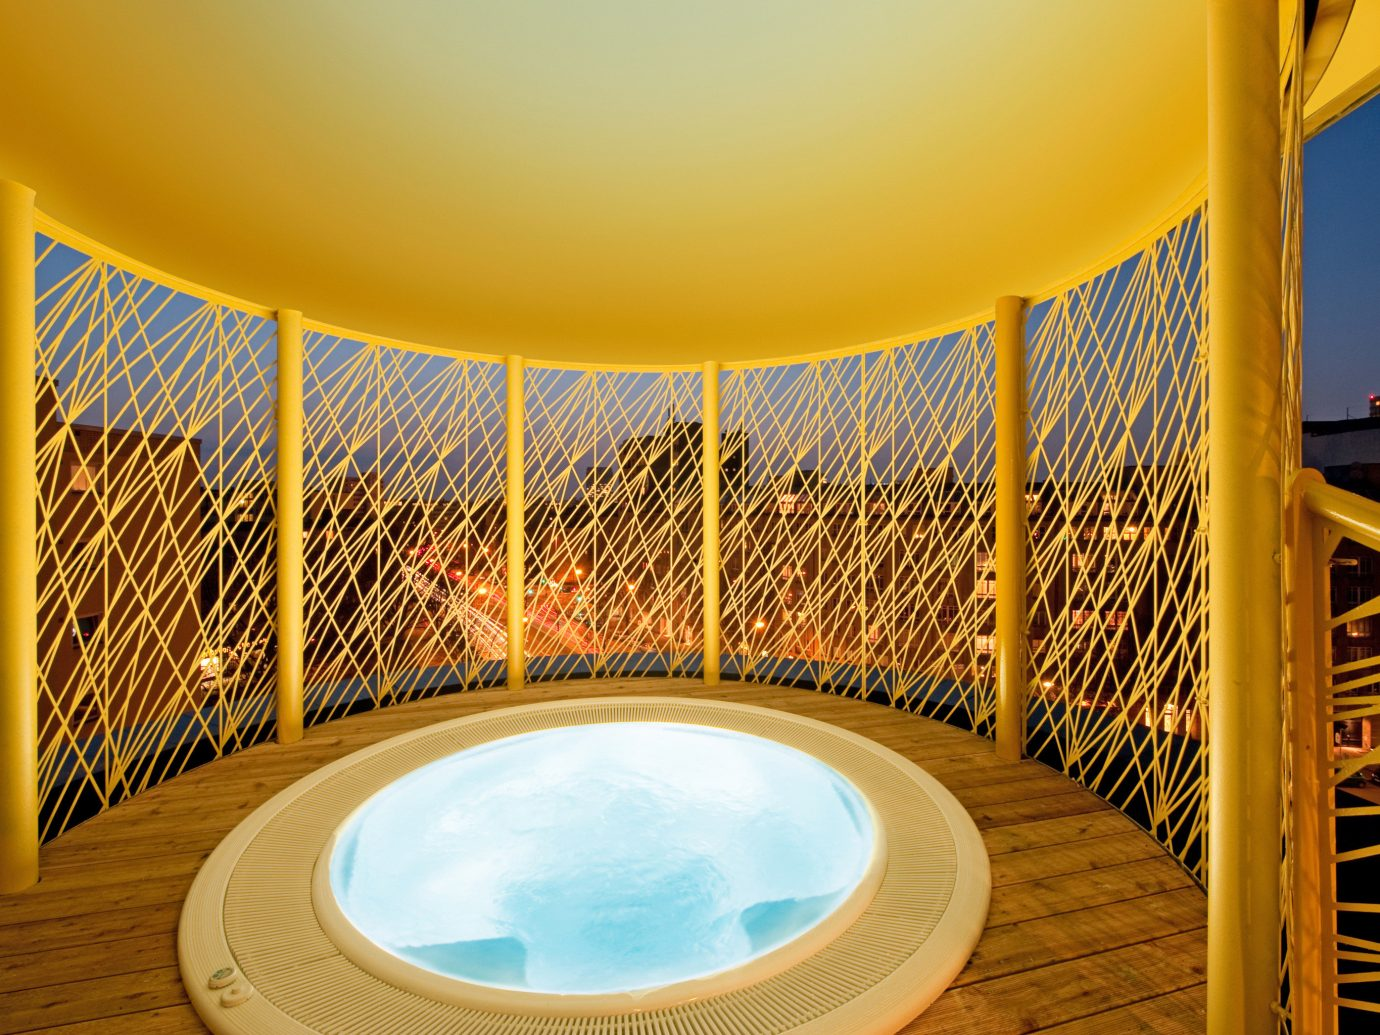 Adult-only Bath Boutique Hotels City Festivals + Events Hip Hotels Scenic views Trip Ideas Wellness chair outdoor leisure yellow room swimming pool interior design Pool estate Resort overlooking